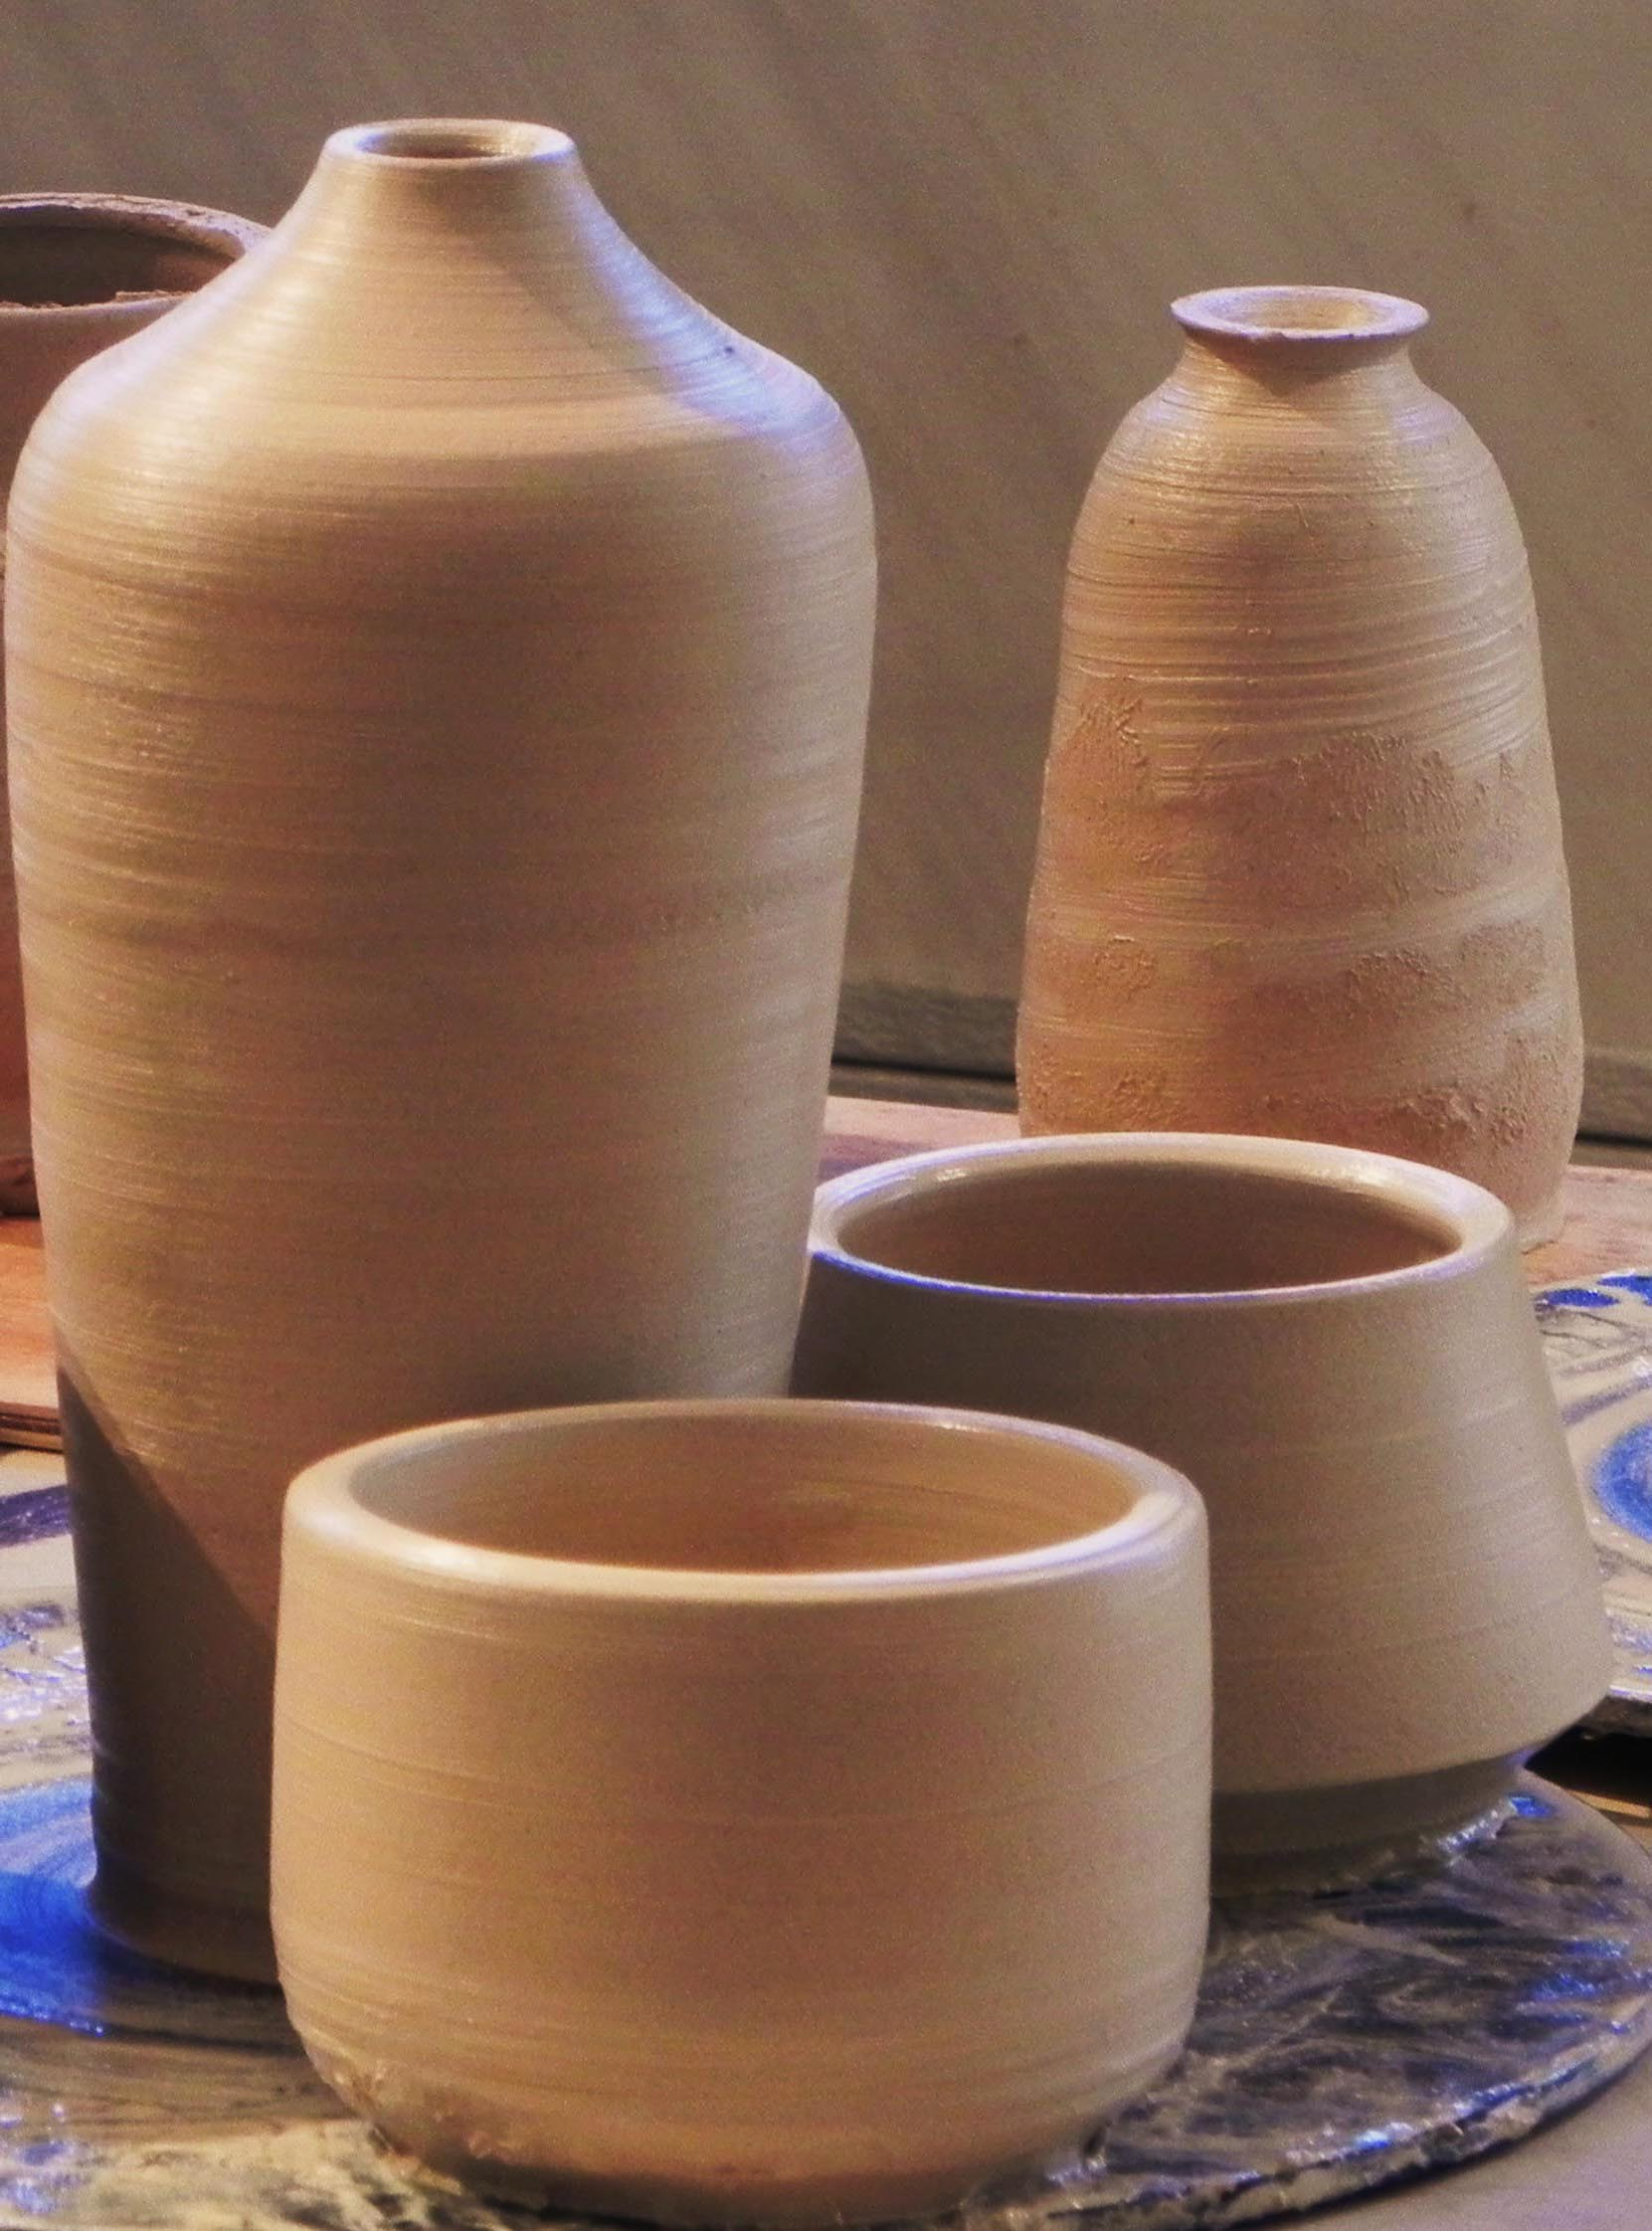 Clay Throwing, Home School Classes, More at AMG LexLeader